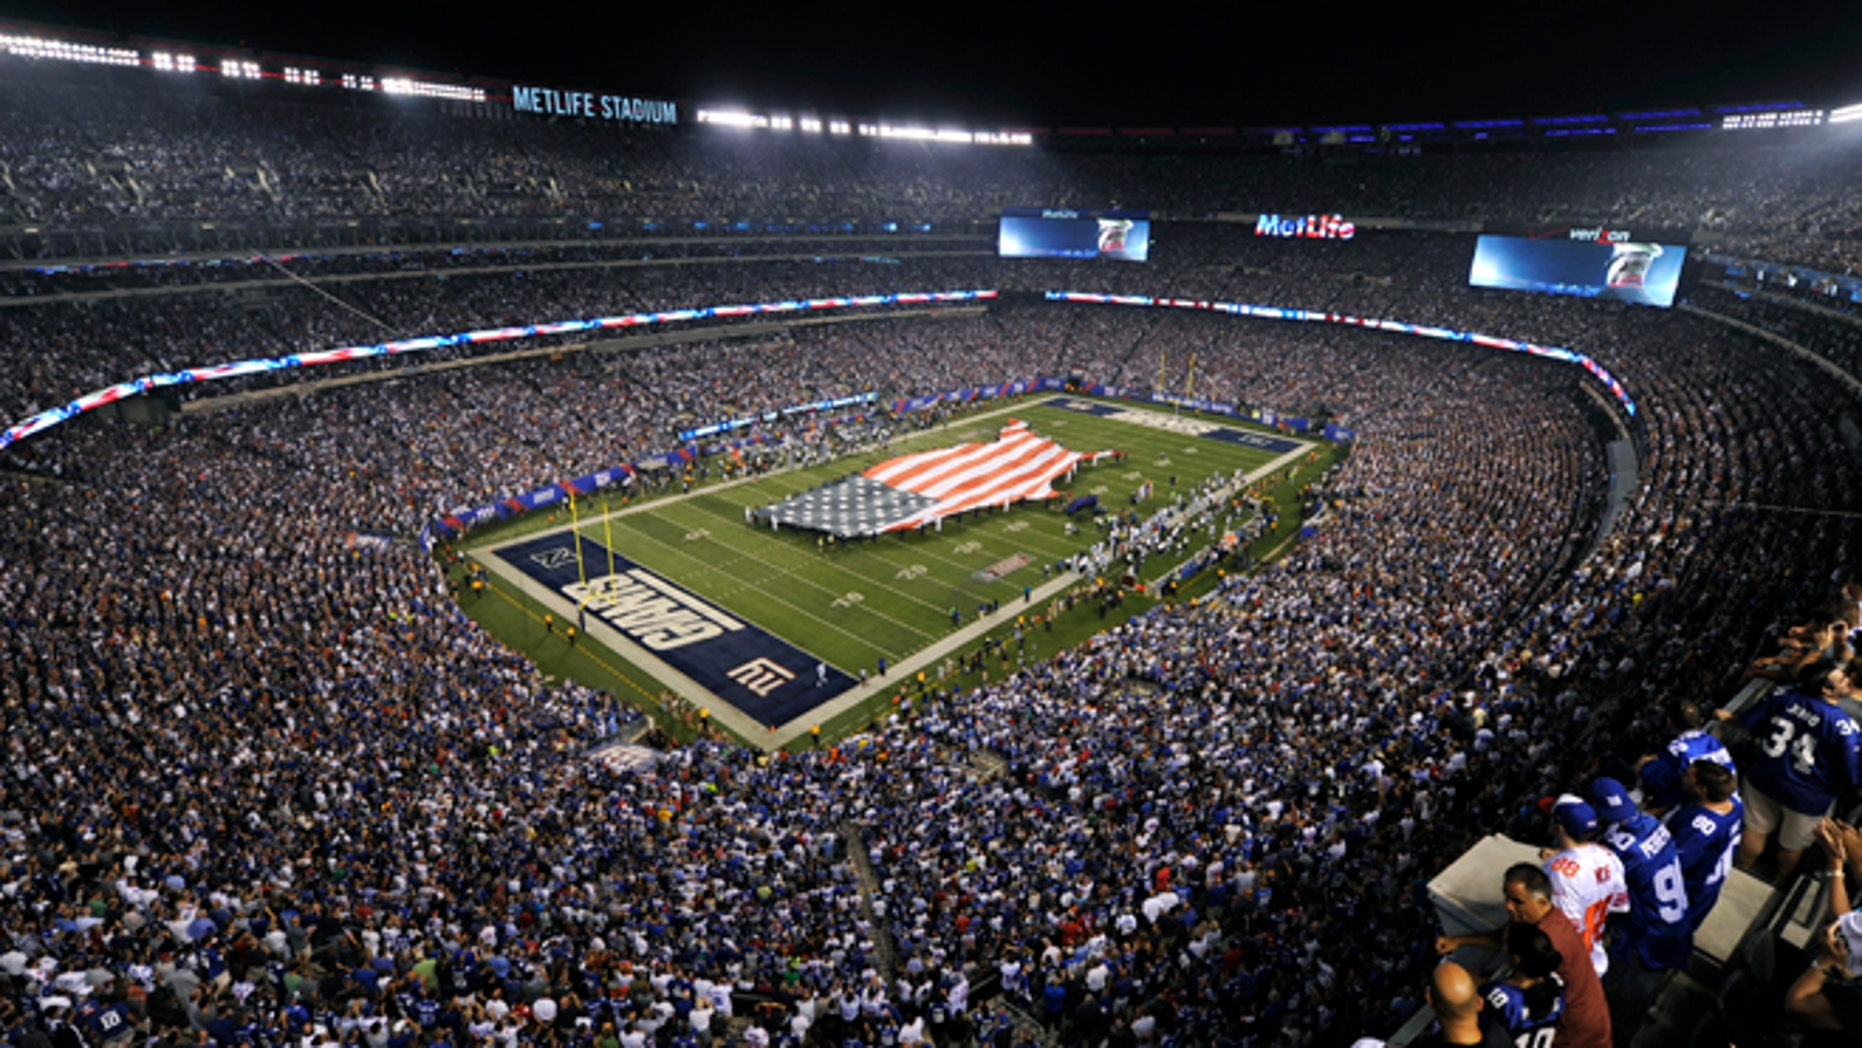 Sept. 5: A general overall view of the Metlife Stadium as the New York Giants host the Dallas Cowboys in the opening game of the NFL football season in East Rutherford, New Jersey.